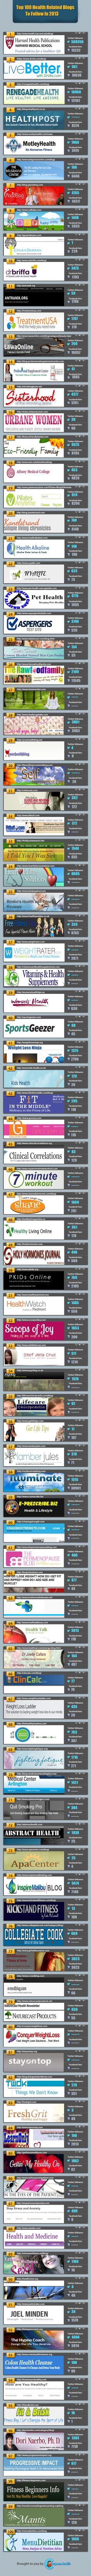 Top 100 Health blogs to follow in 2013